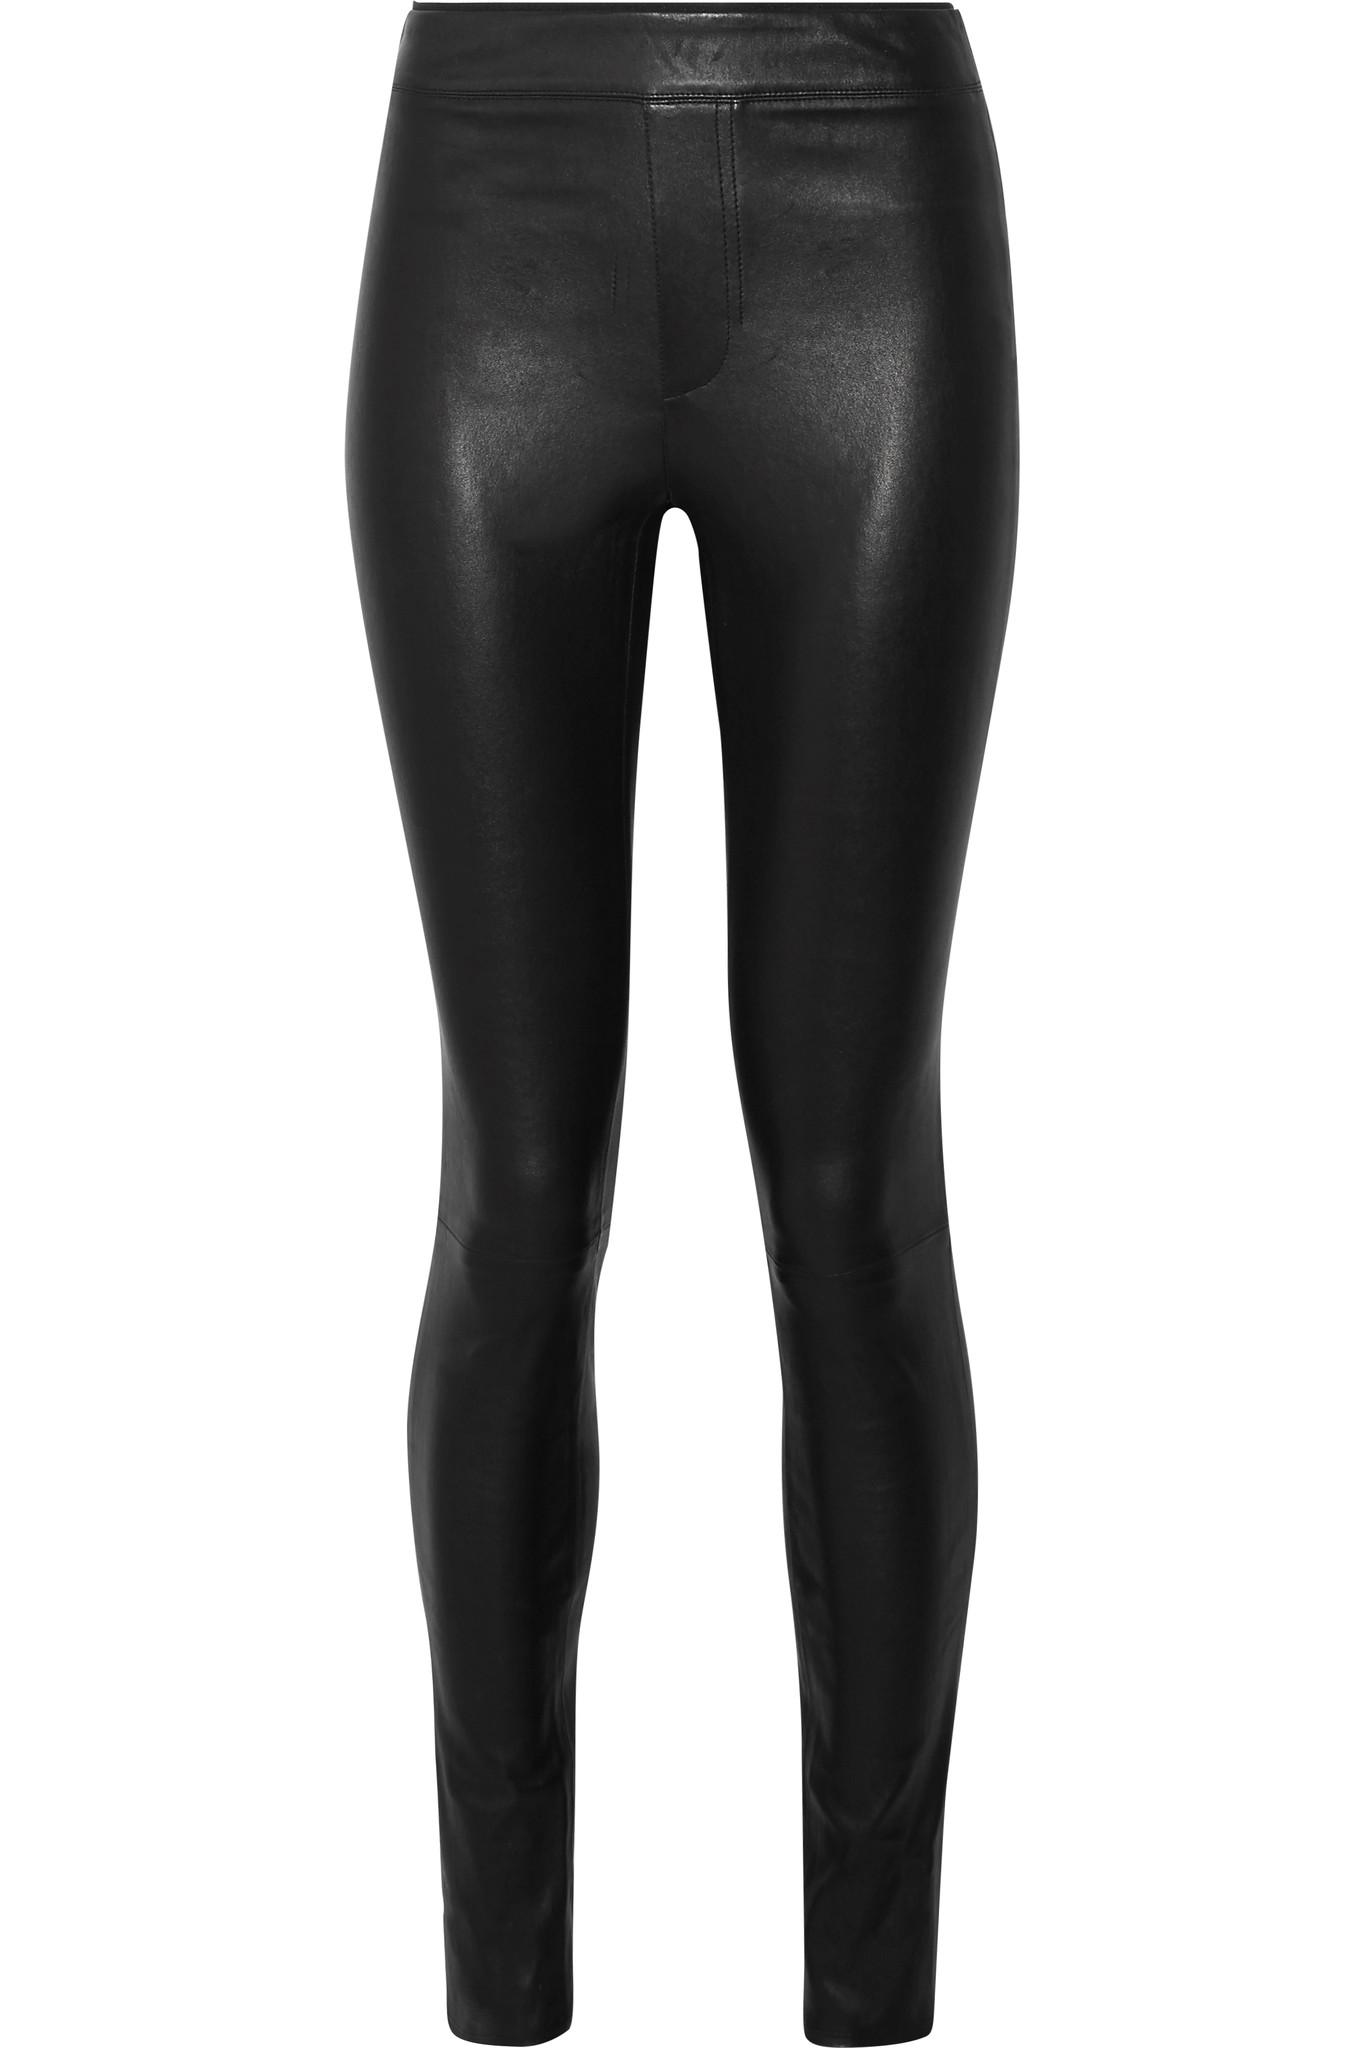 086a7fea802910 Helmut Lang Stretch-leather Leggings in Black - Lyst